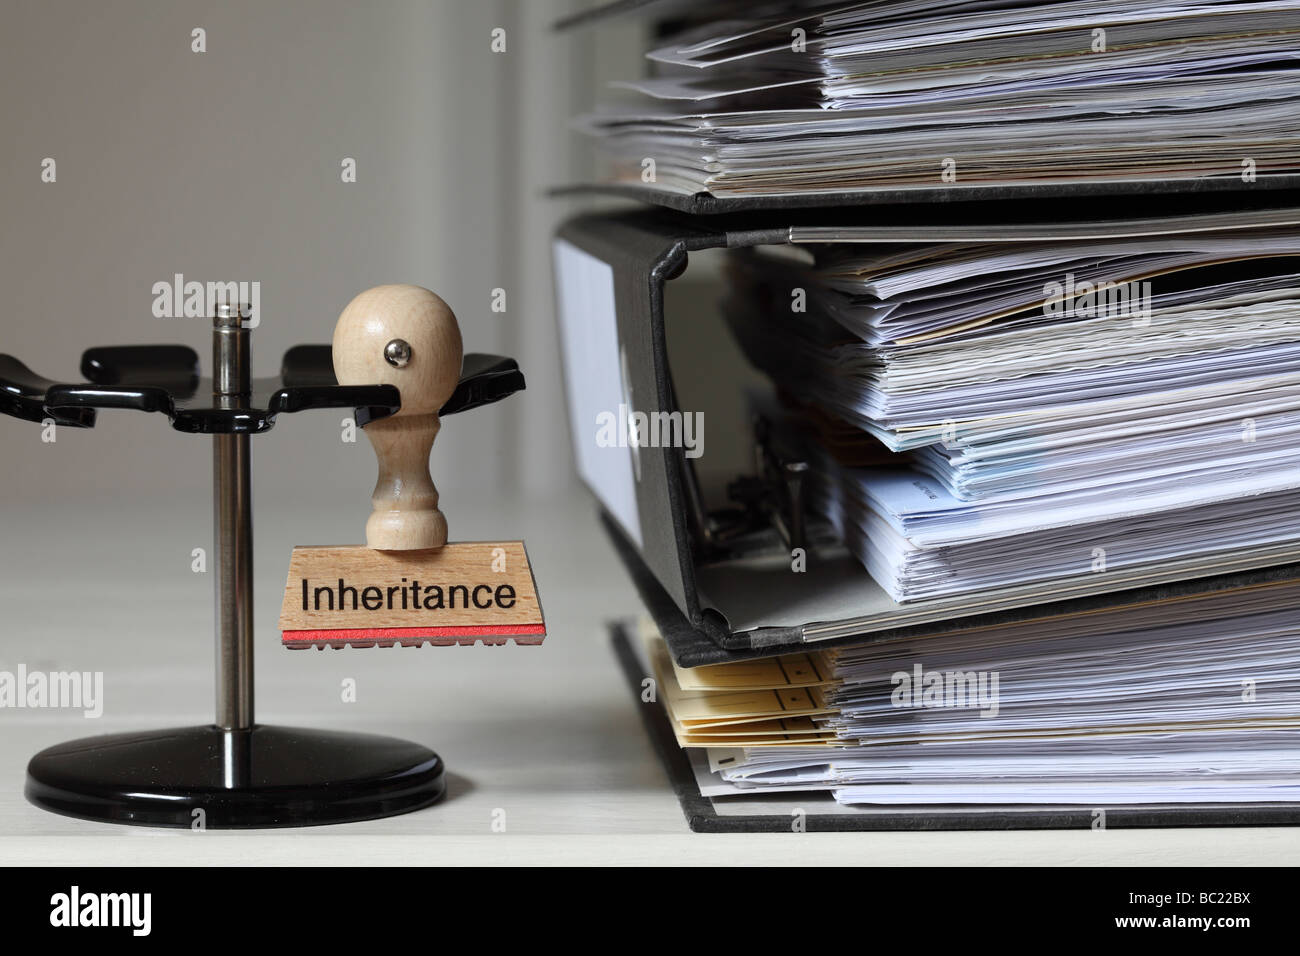 Stamp with inscription Inheritance next to a pile of files - Stock Image